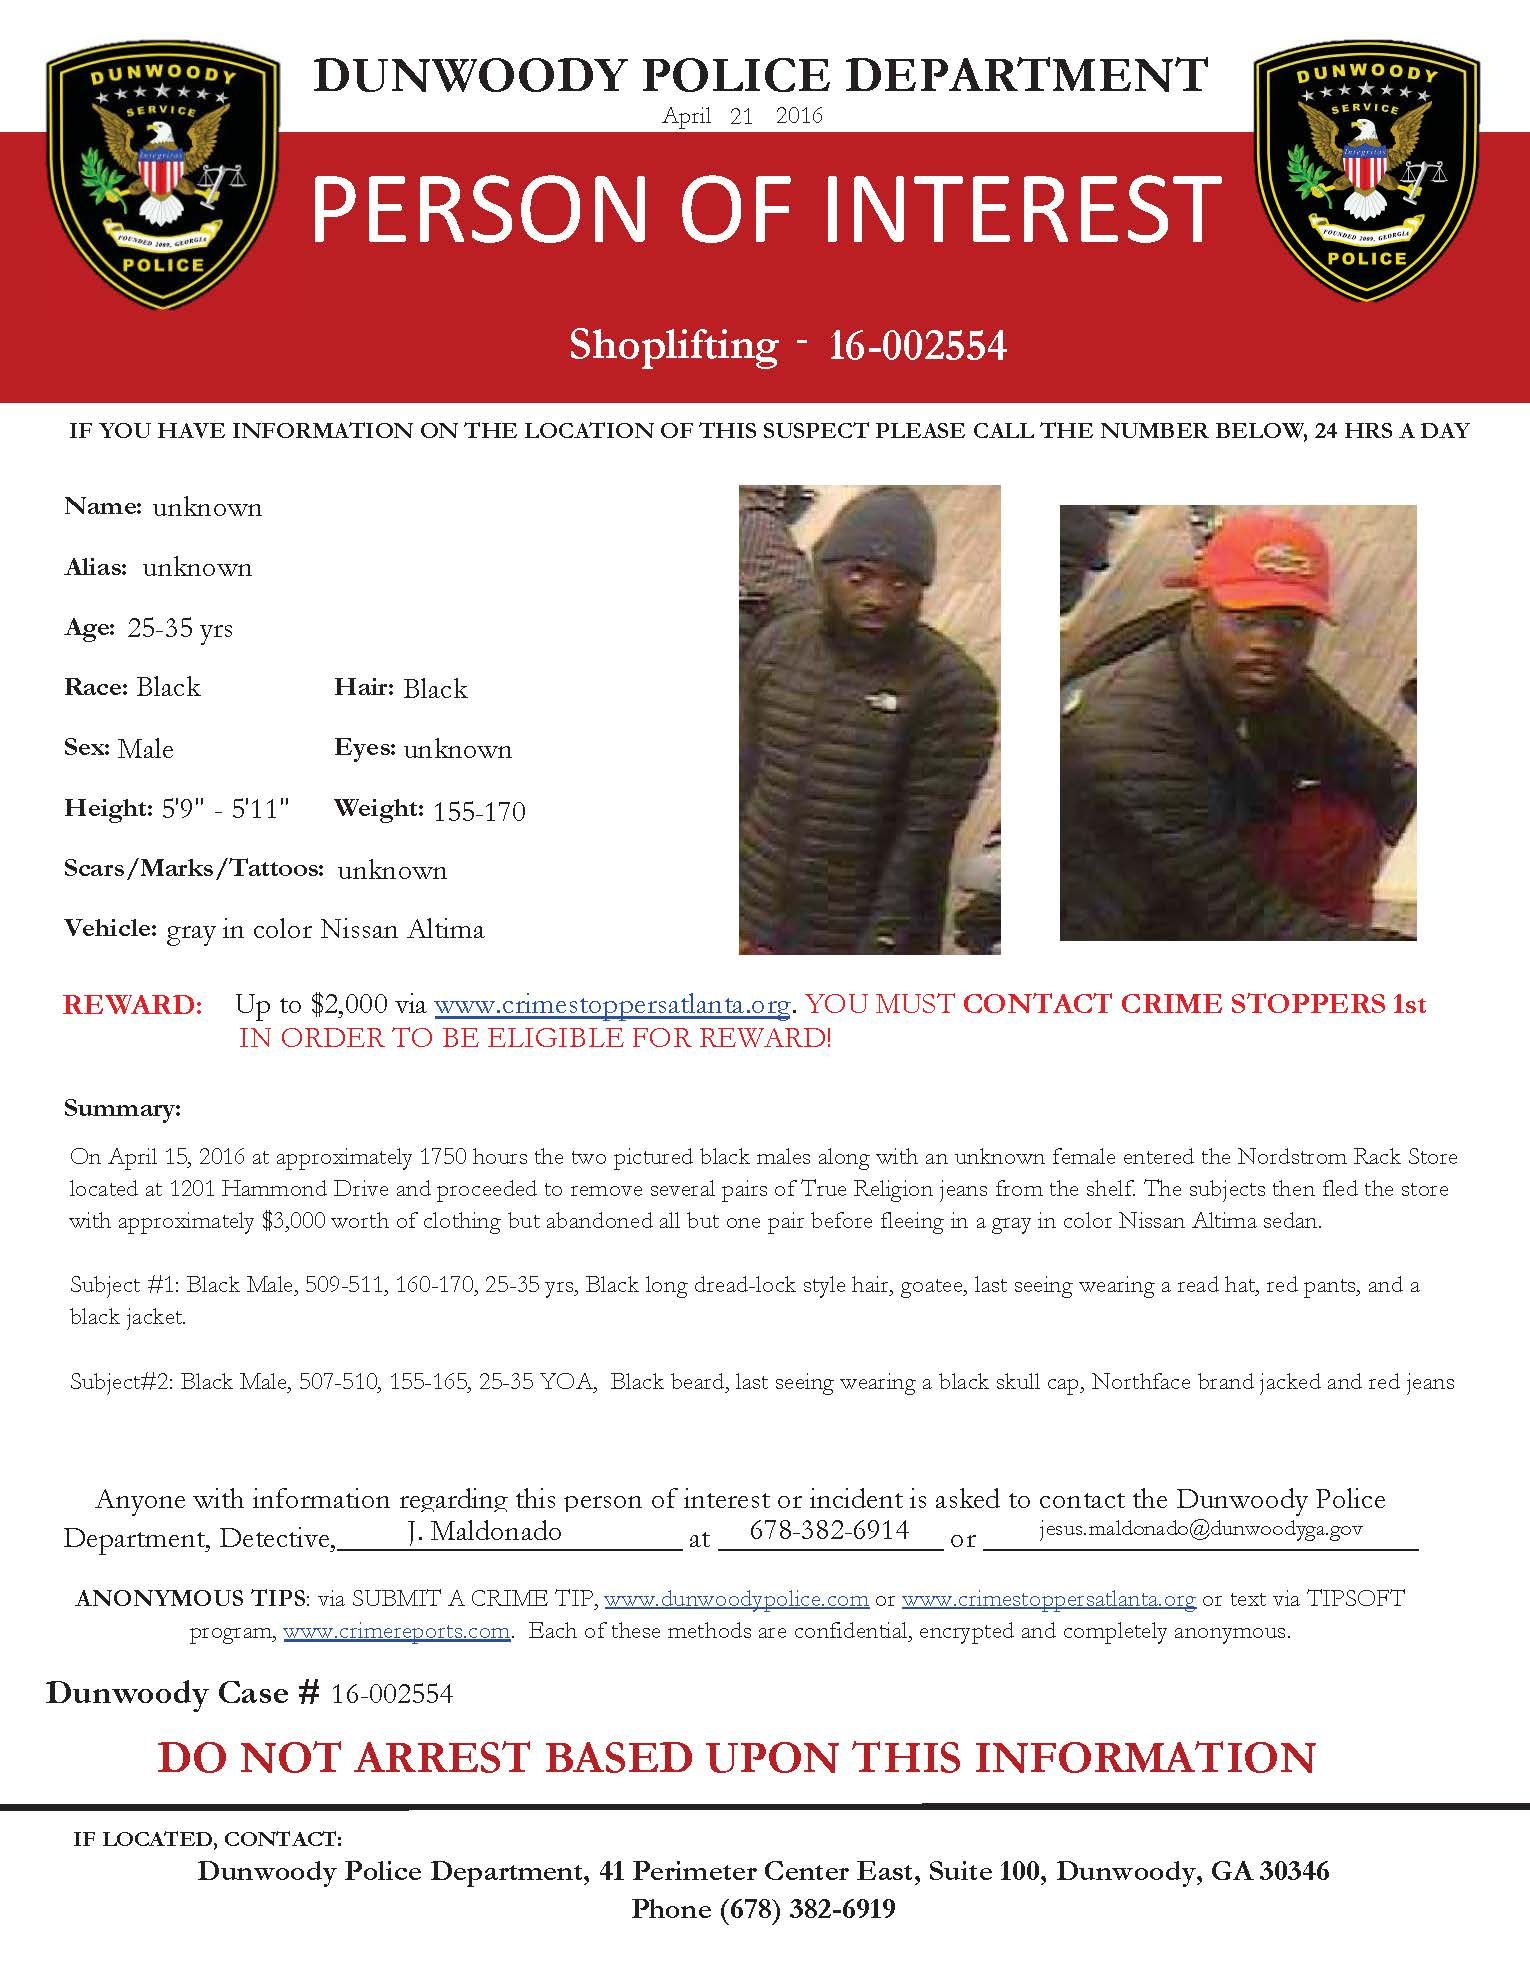 SHOPLIFTING: If you have any information about this case, please contact Detective Maldonado at 678-382-6914 or jesus.maldonado@dunwoodyga.gov (LS) #dunwoodypolice